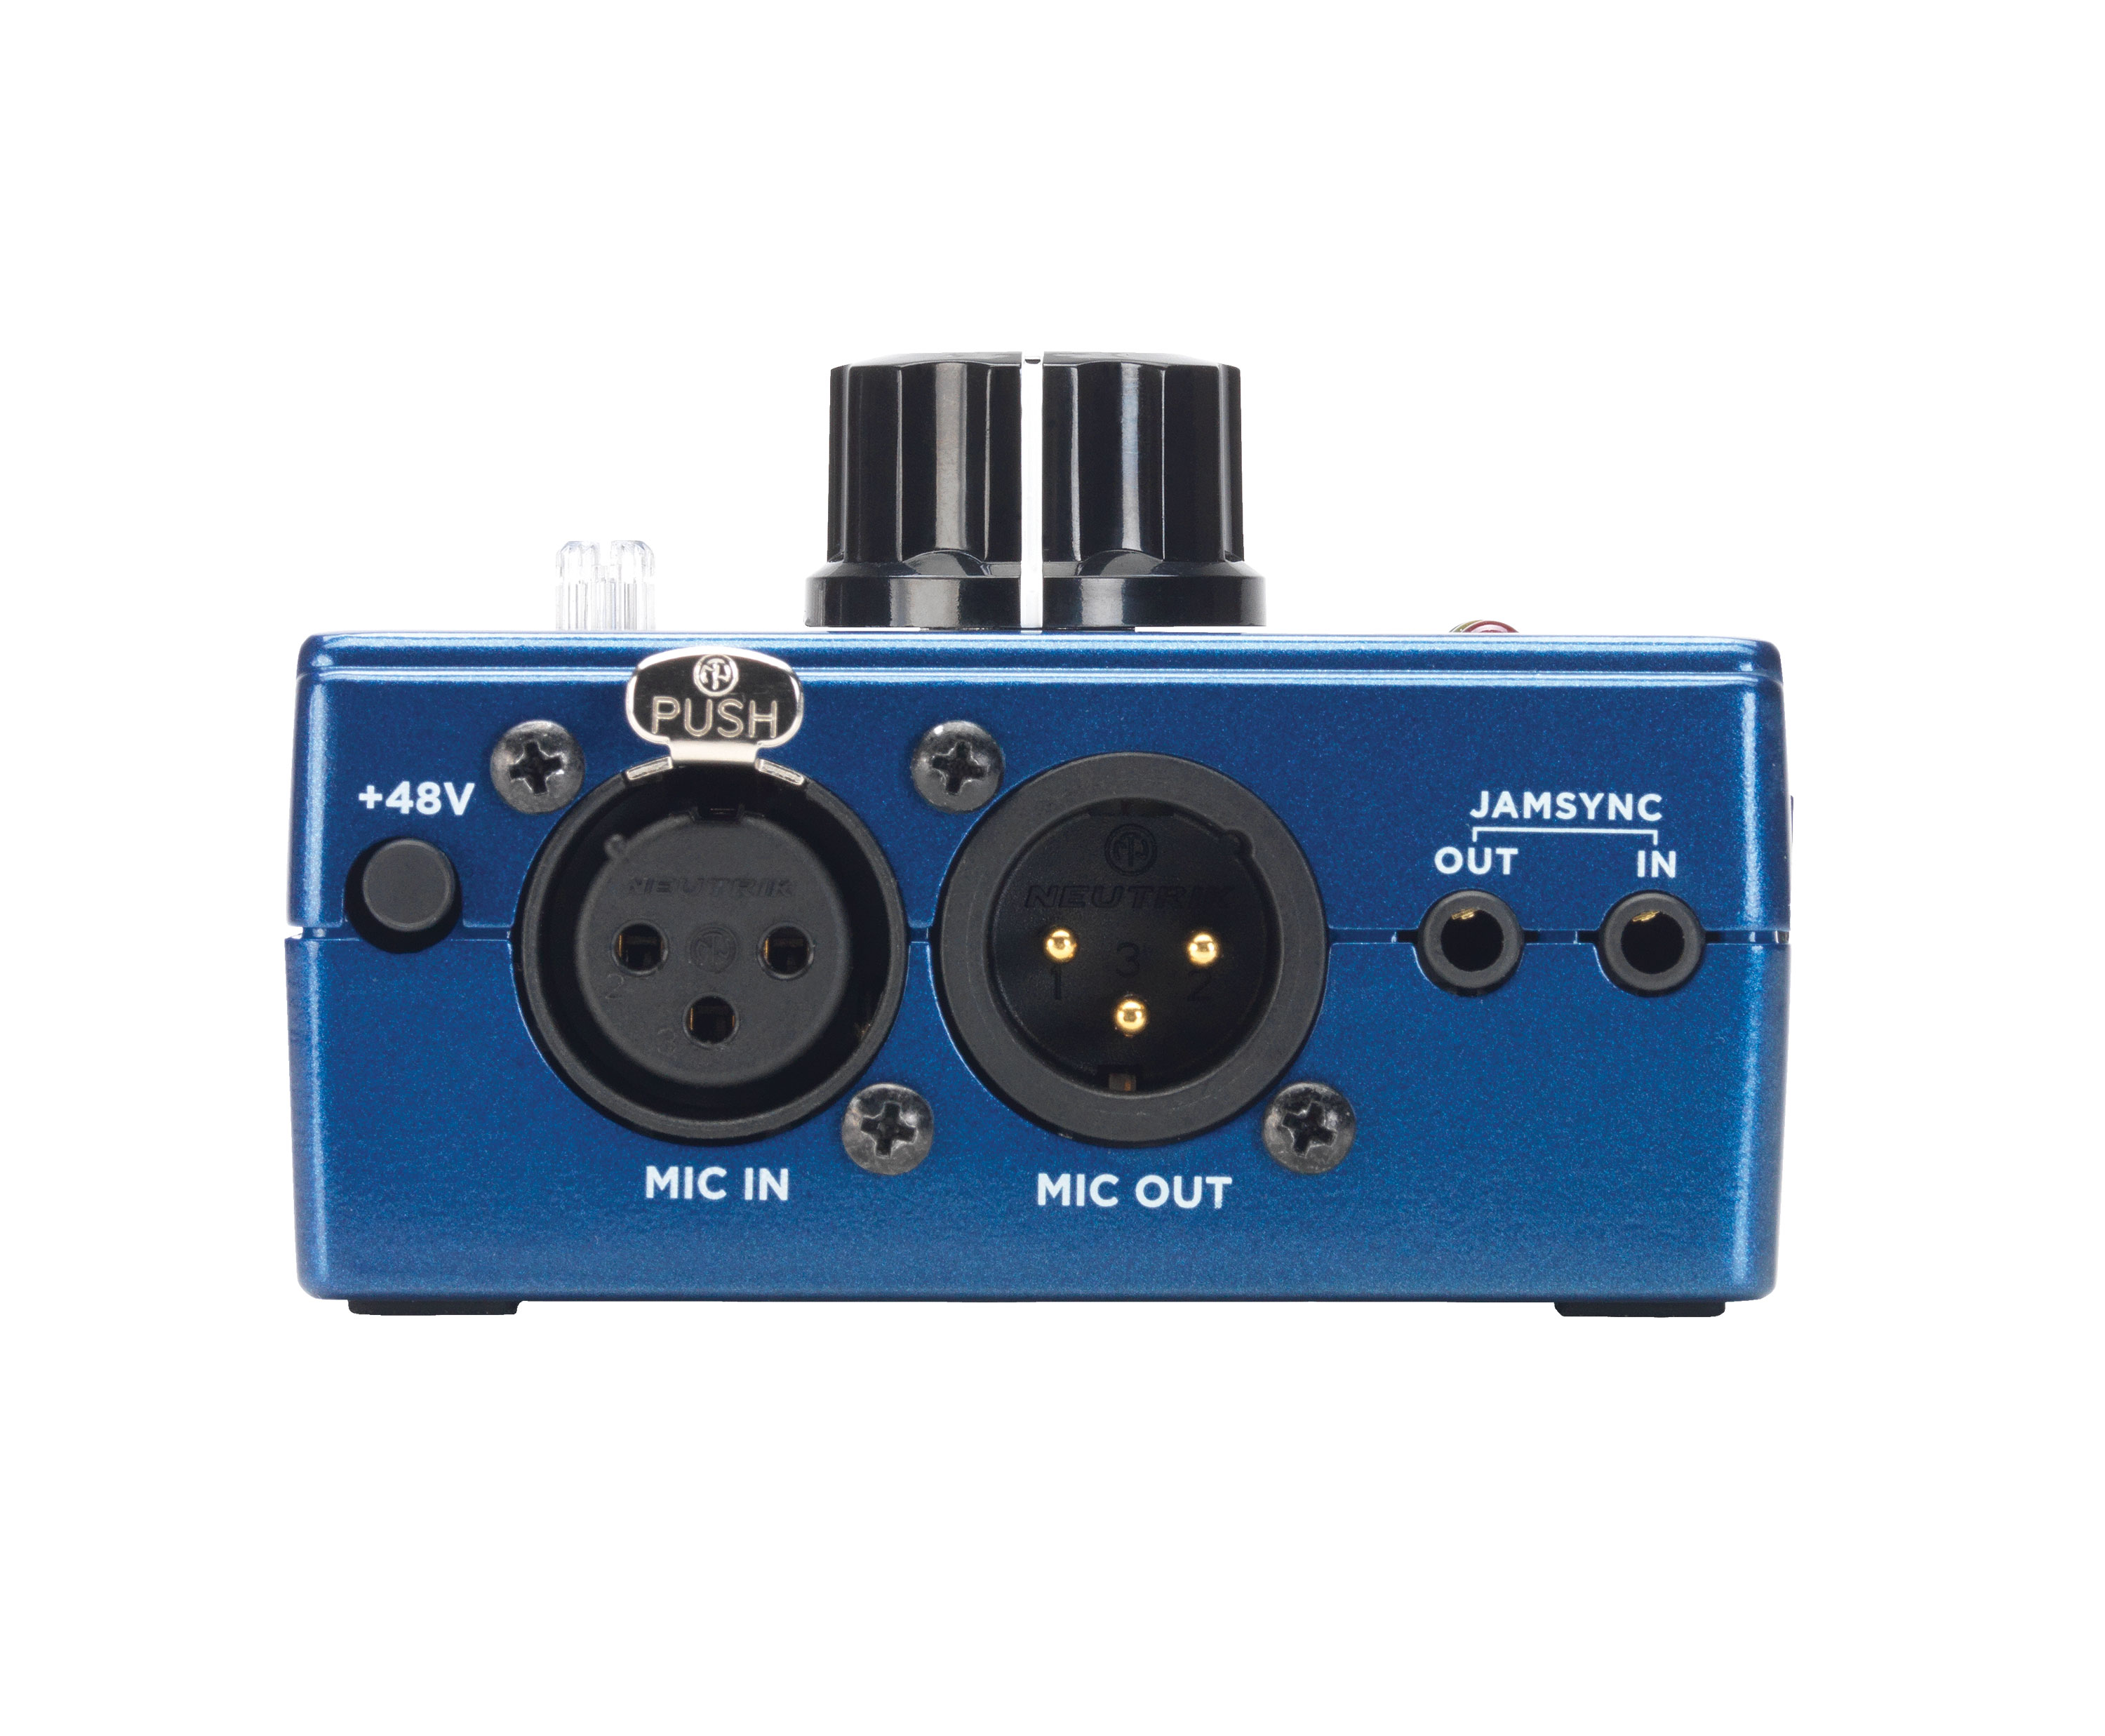 Jamman Vocal Xt Digitech Guitar Effects Preamplifier For Microphone Or Use